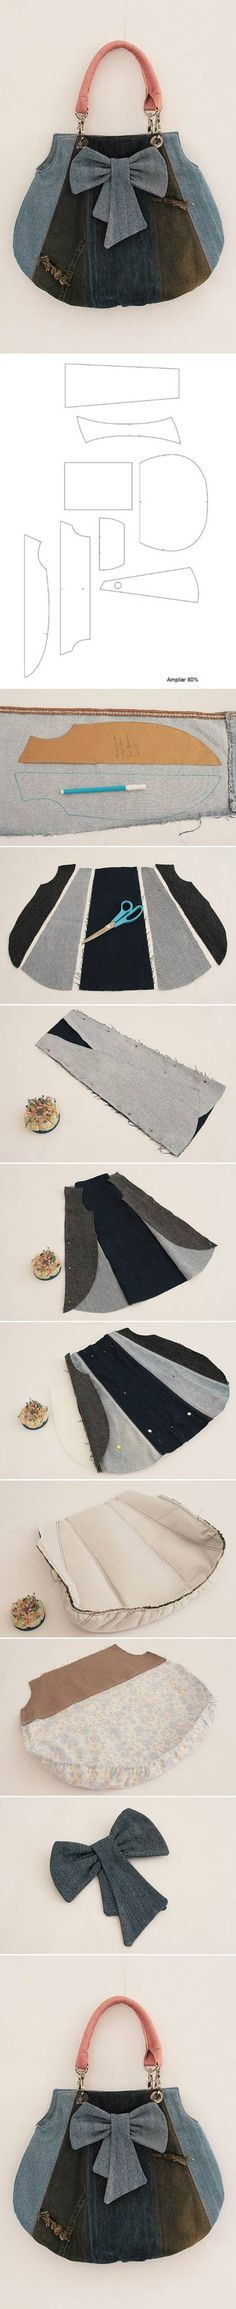 DIY Old Jeans Fashion Bag